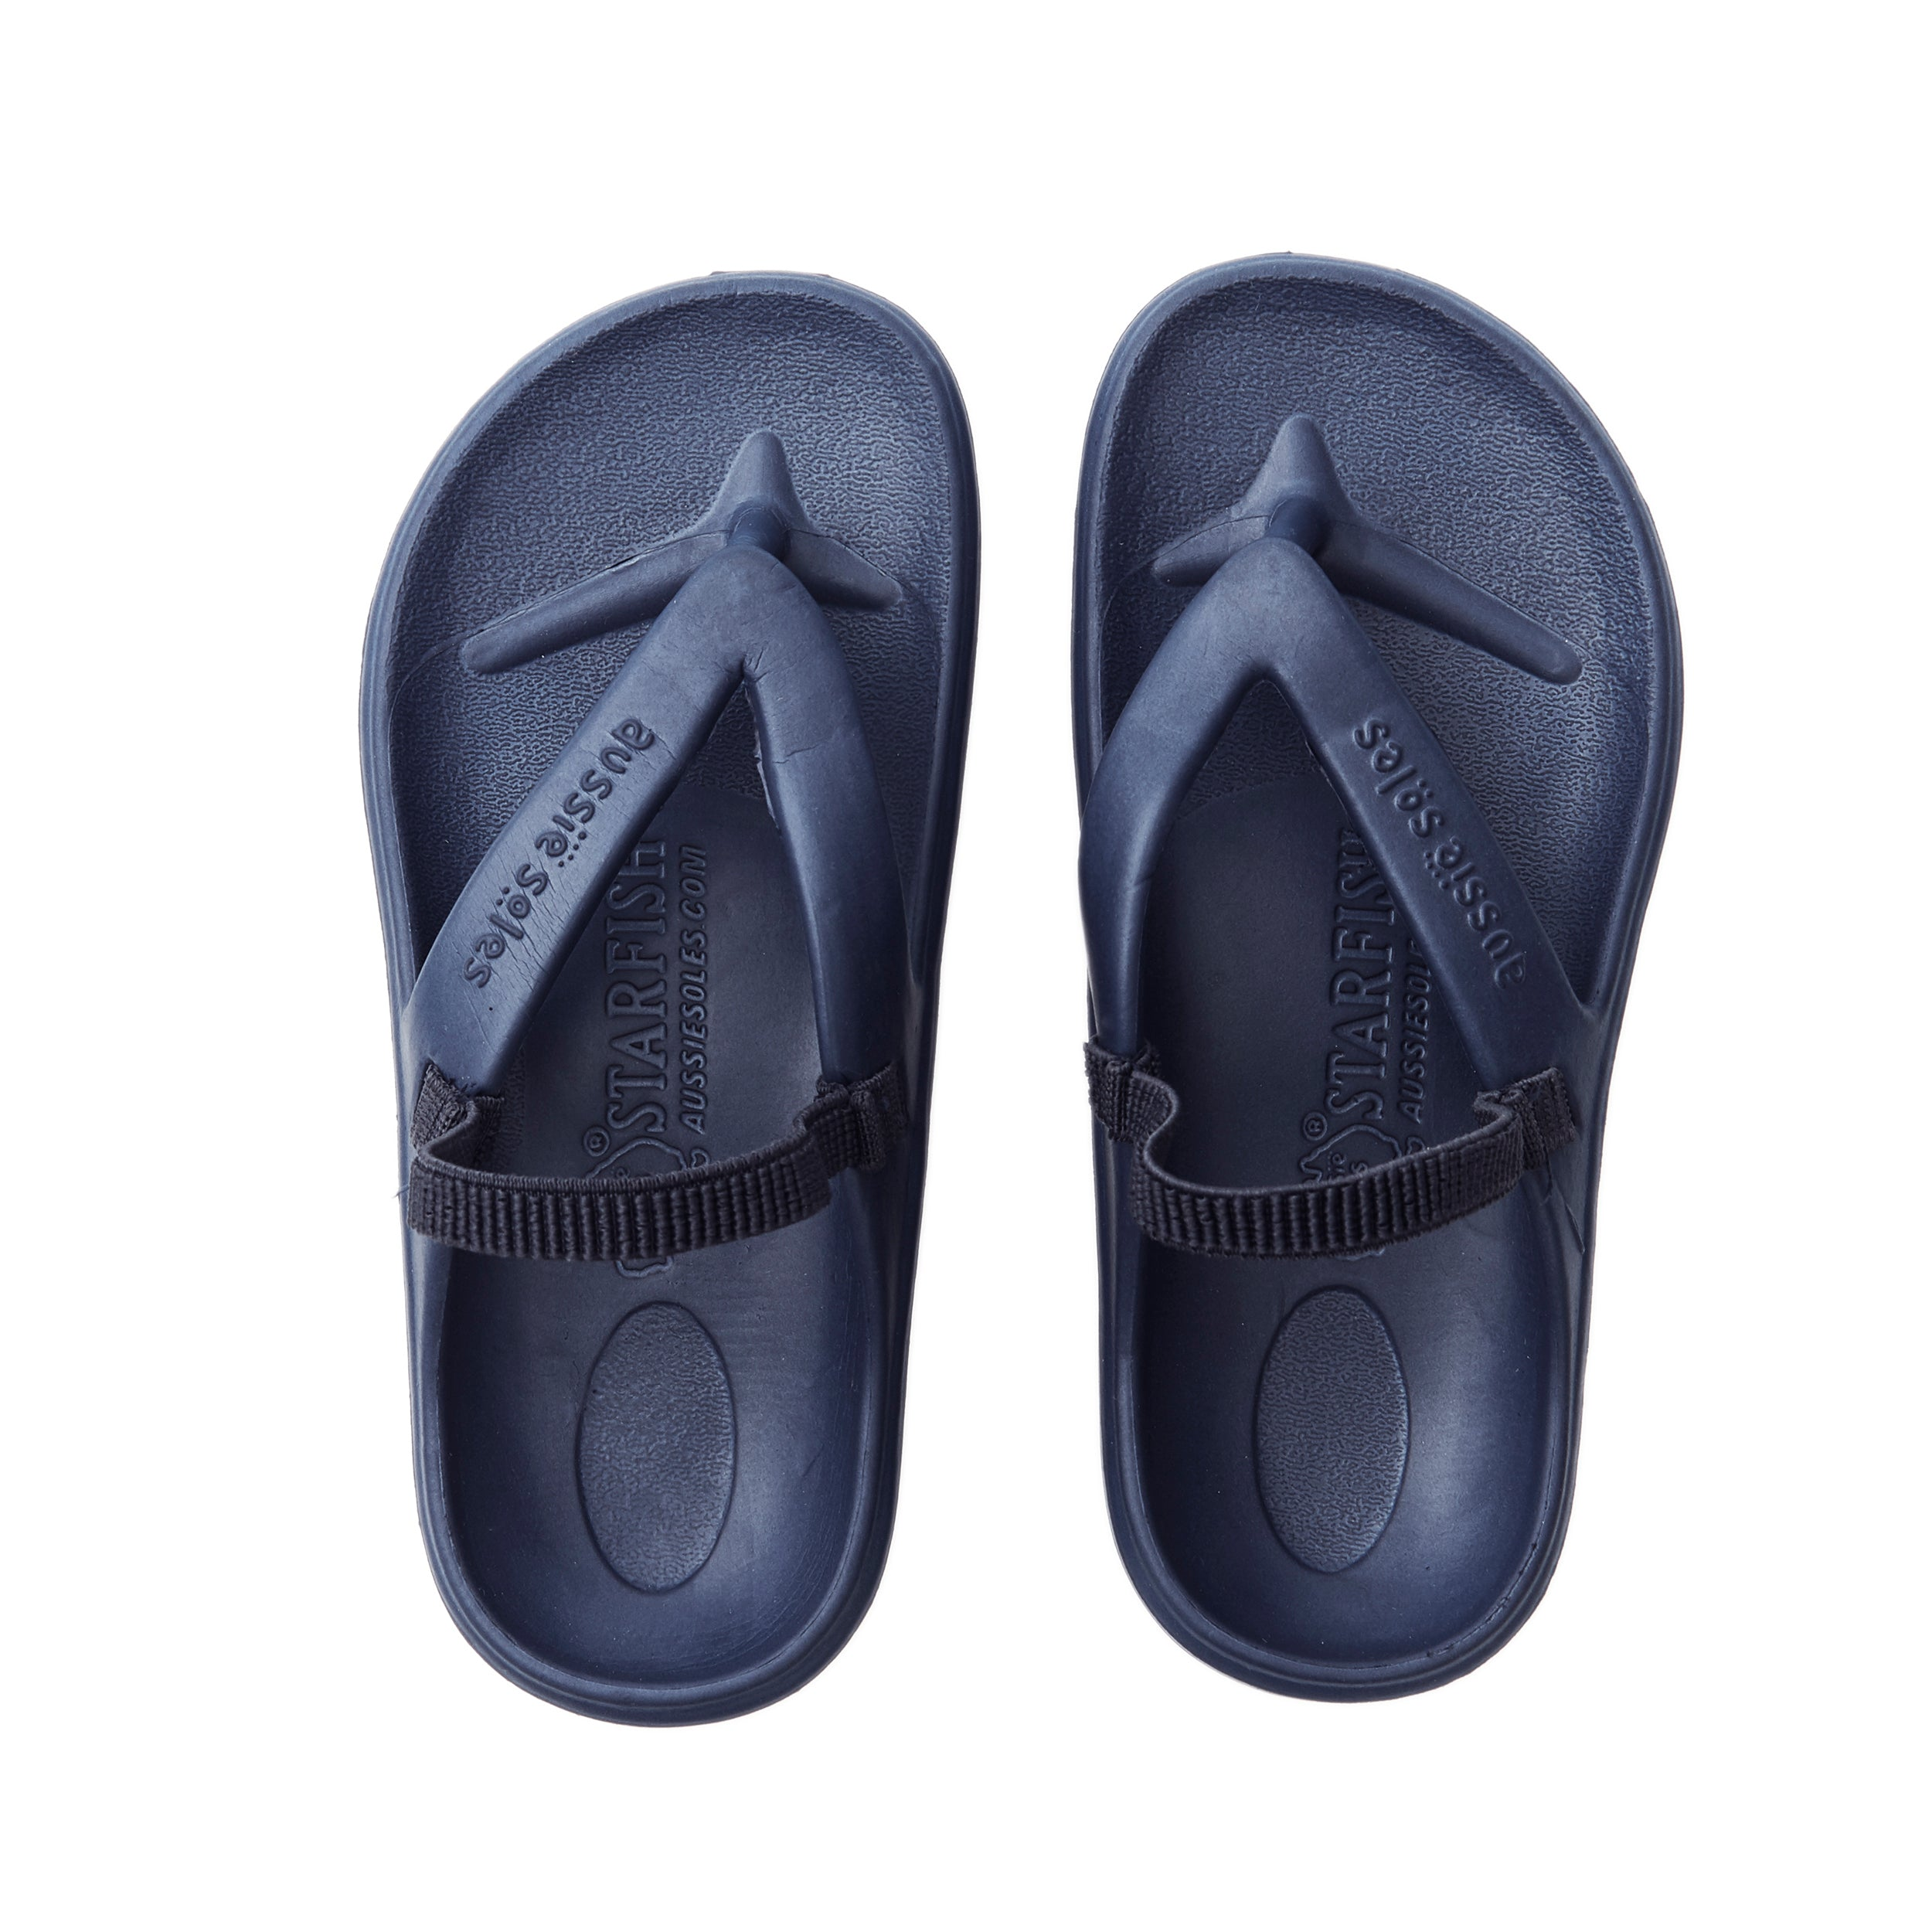 c728ce986 Children s Flip-Flops With Arch Support  Aussie Soles Orthotic ...